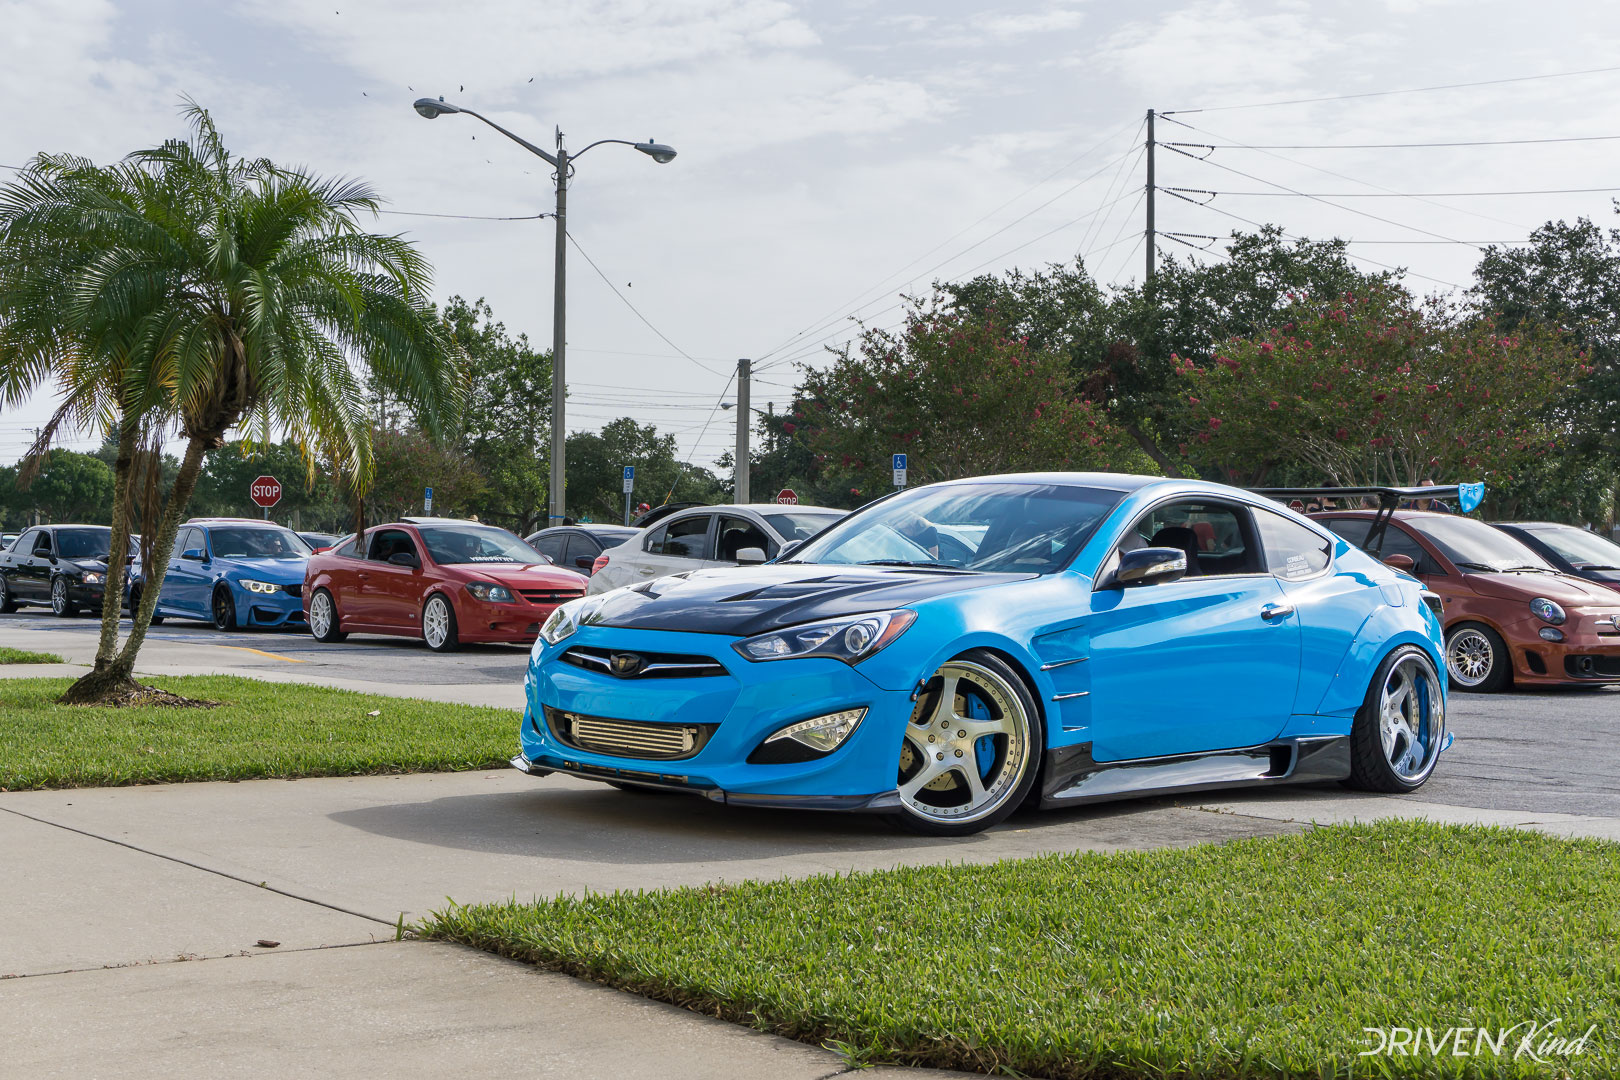 Hynudai Genesis Coupe Daily Driven Inc. Presents Florida's Finest Melbourne FL Auditorium coverage by The Driven Kind